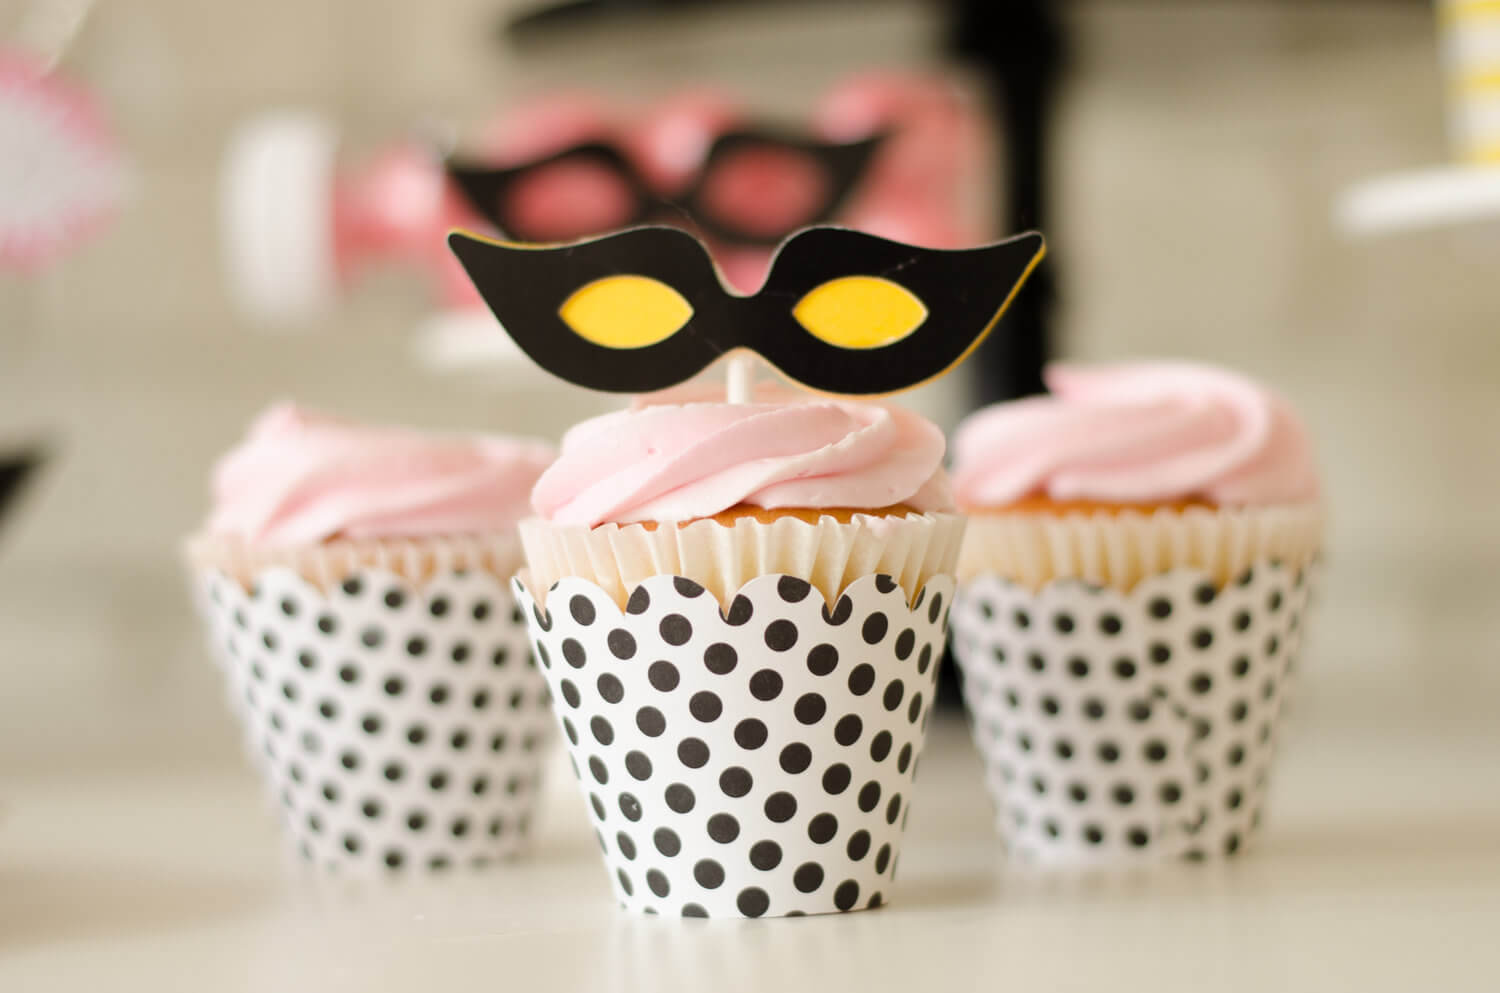 Polka dotted cupcake wrappers, pink frosting and a super hero mask topper are the perfect sweet for the girls at this super hero party - see more kids party ideas on Mint Event Design www.minteventdesign.com